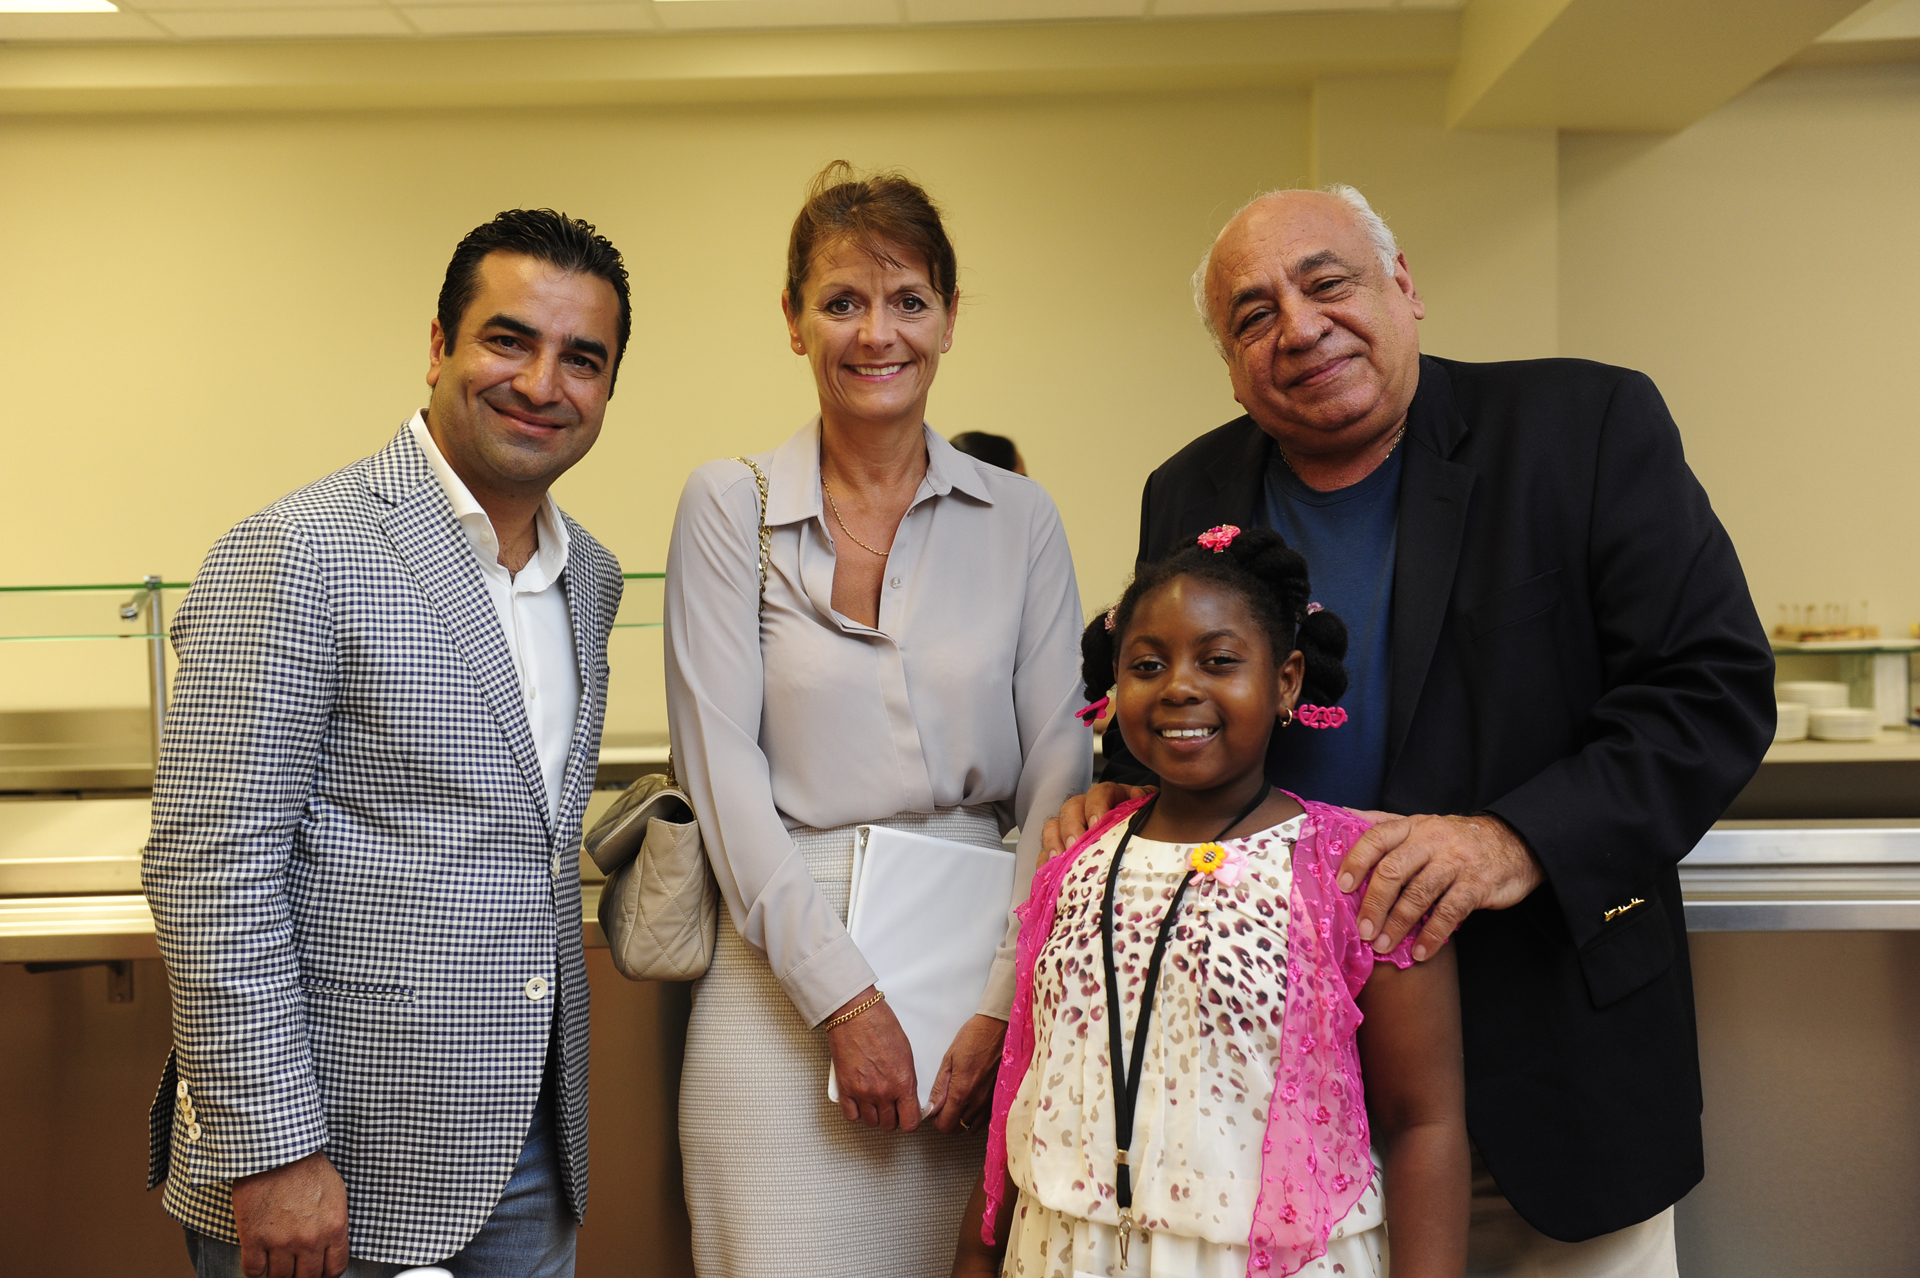 Harry Chandy, Her Excellency the Governor Kilpatrick, Robert Hamaty and Leonisha